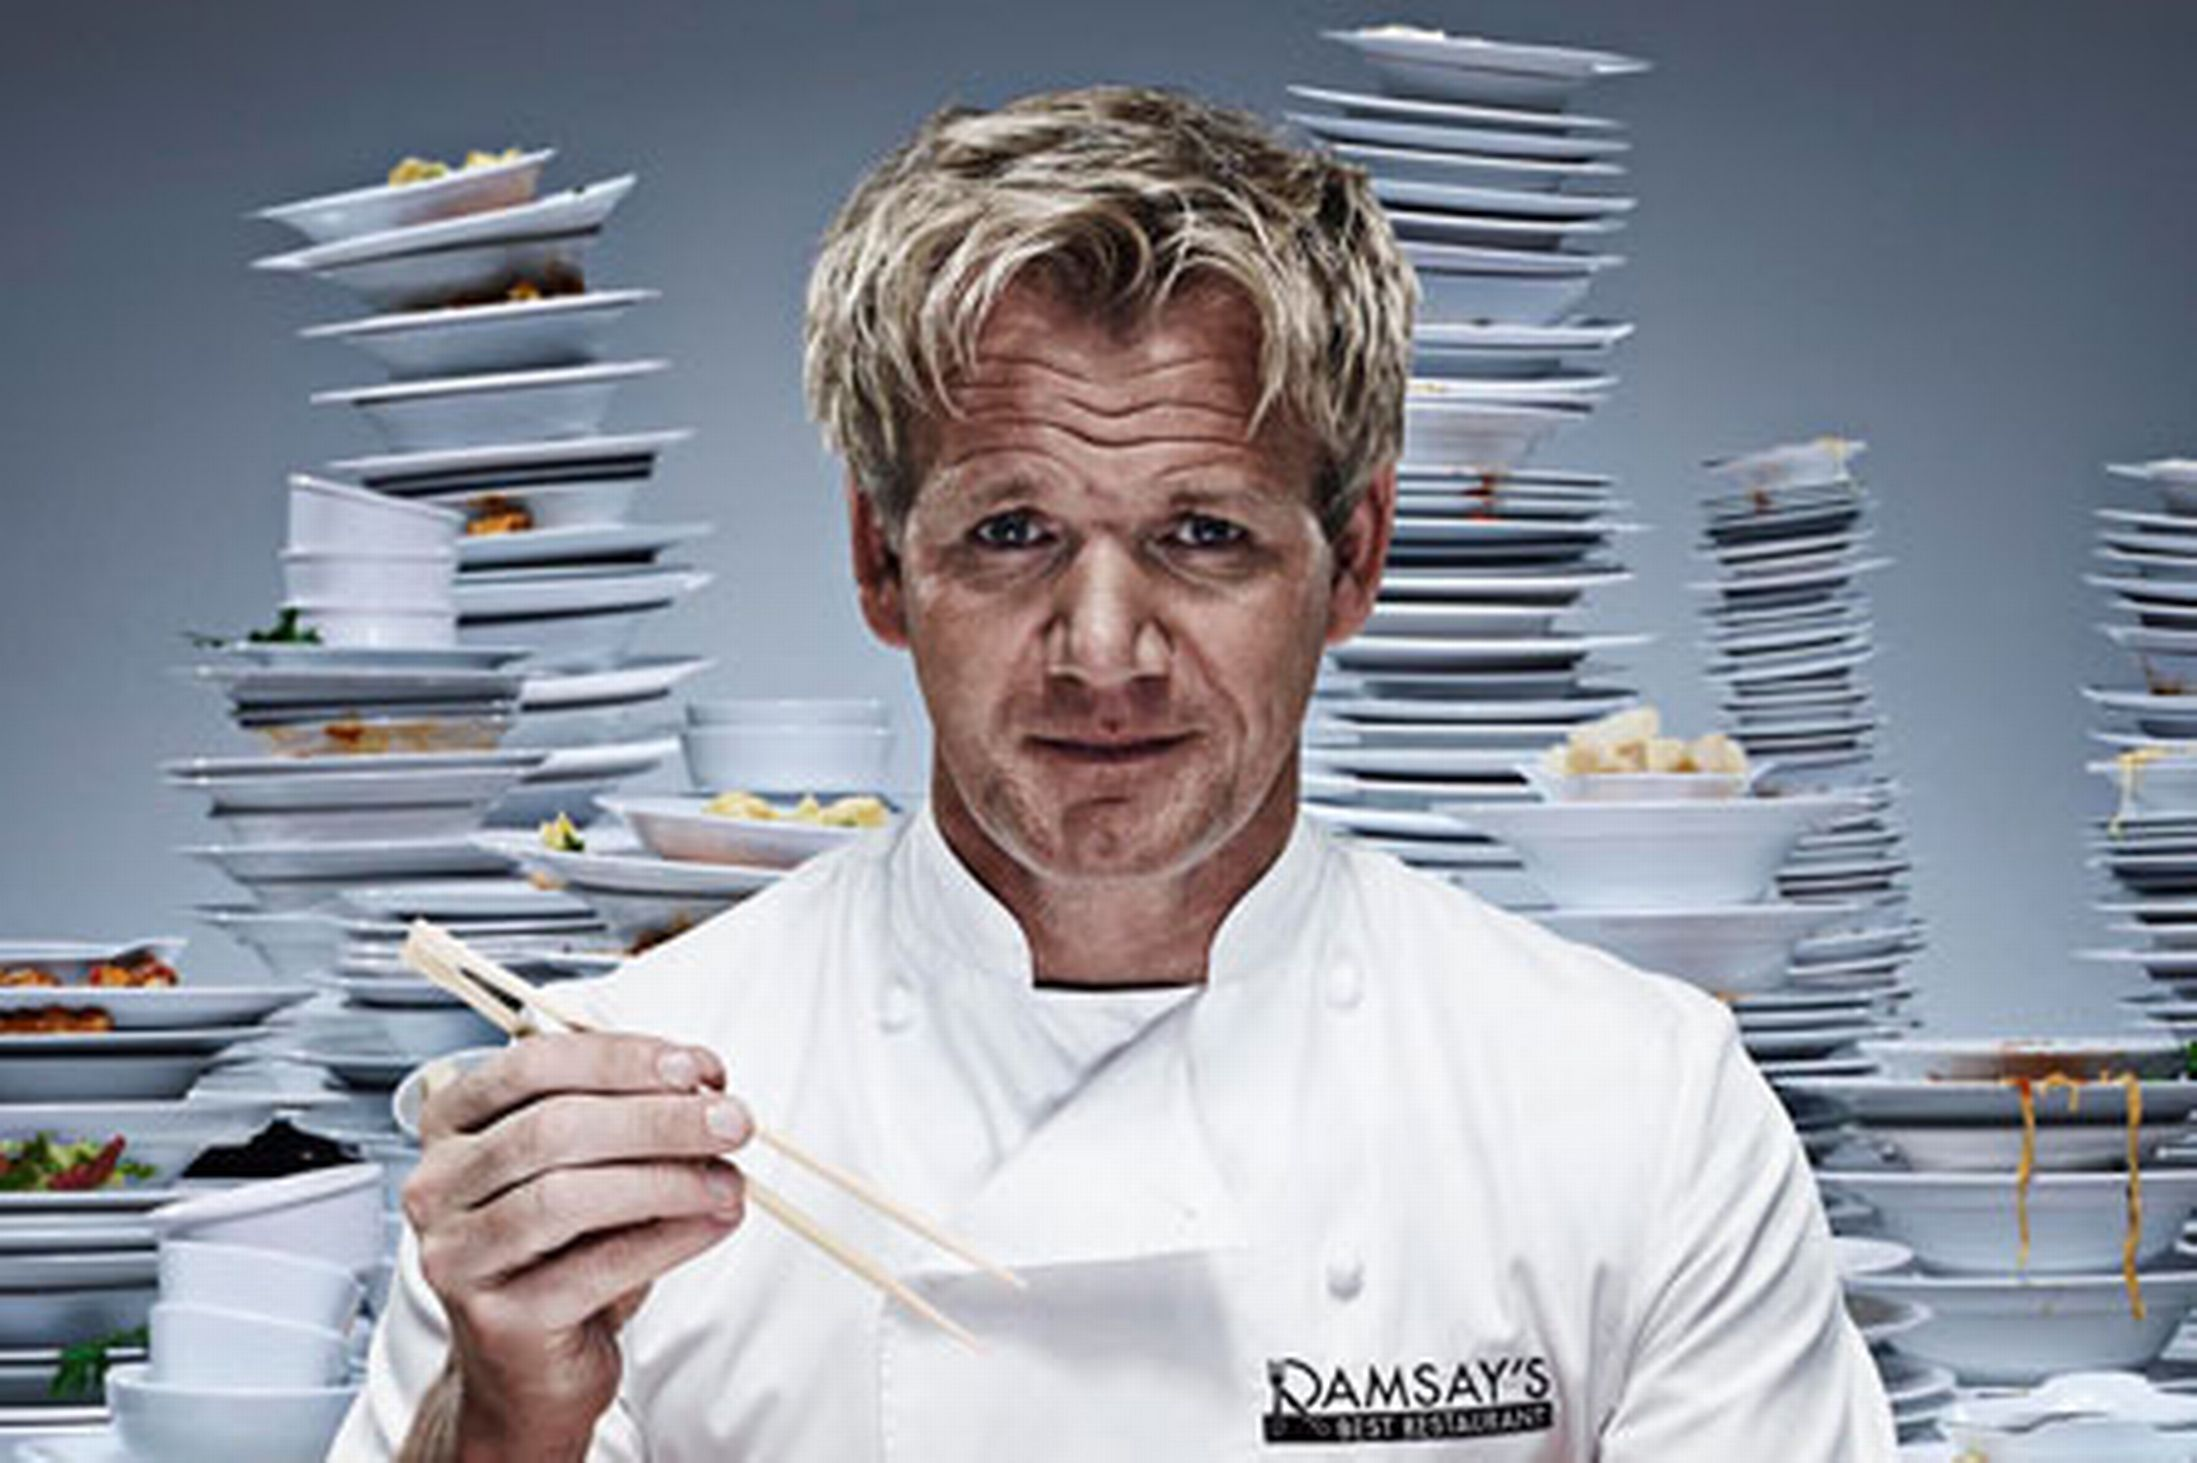 Fedup Gordon Ramsay moving to LA Chef gordon ramsay